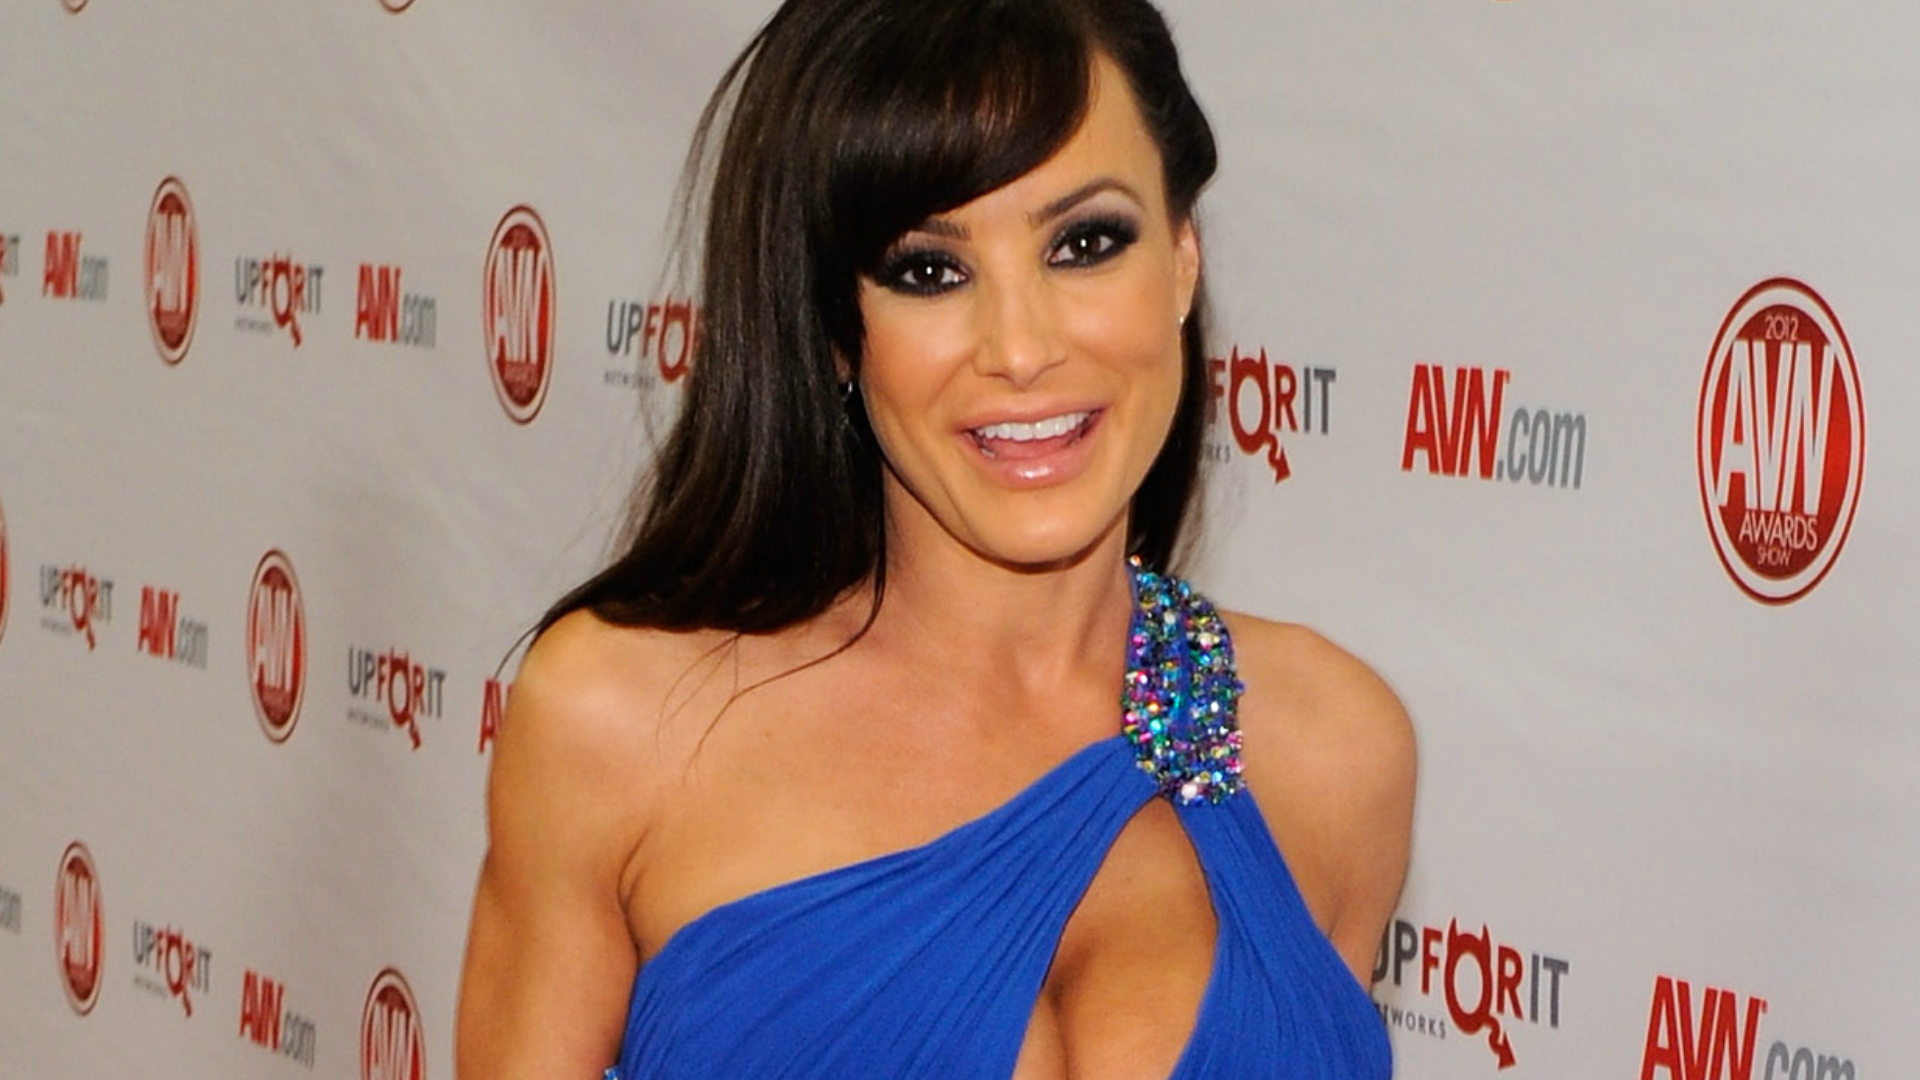 Pornhub legend Lisa Ann